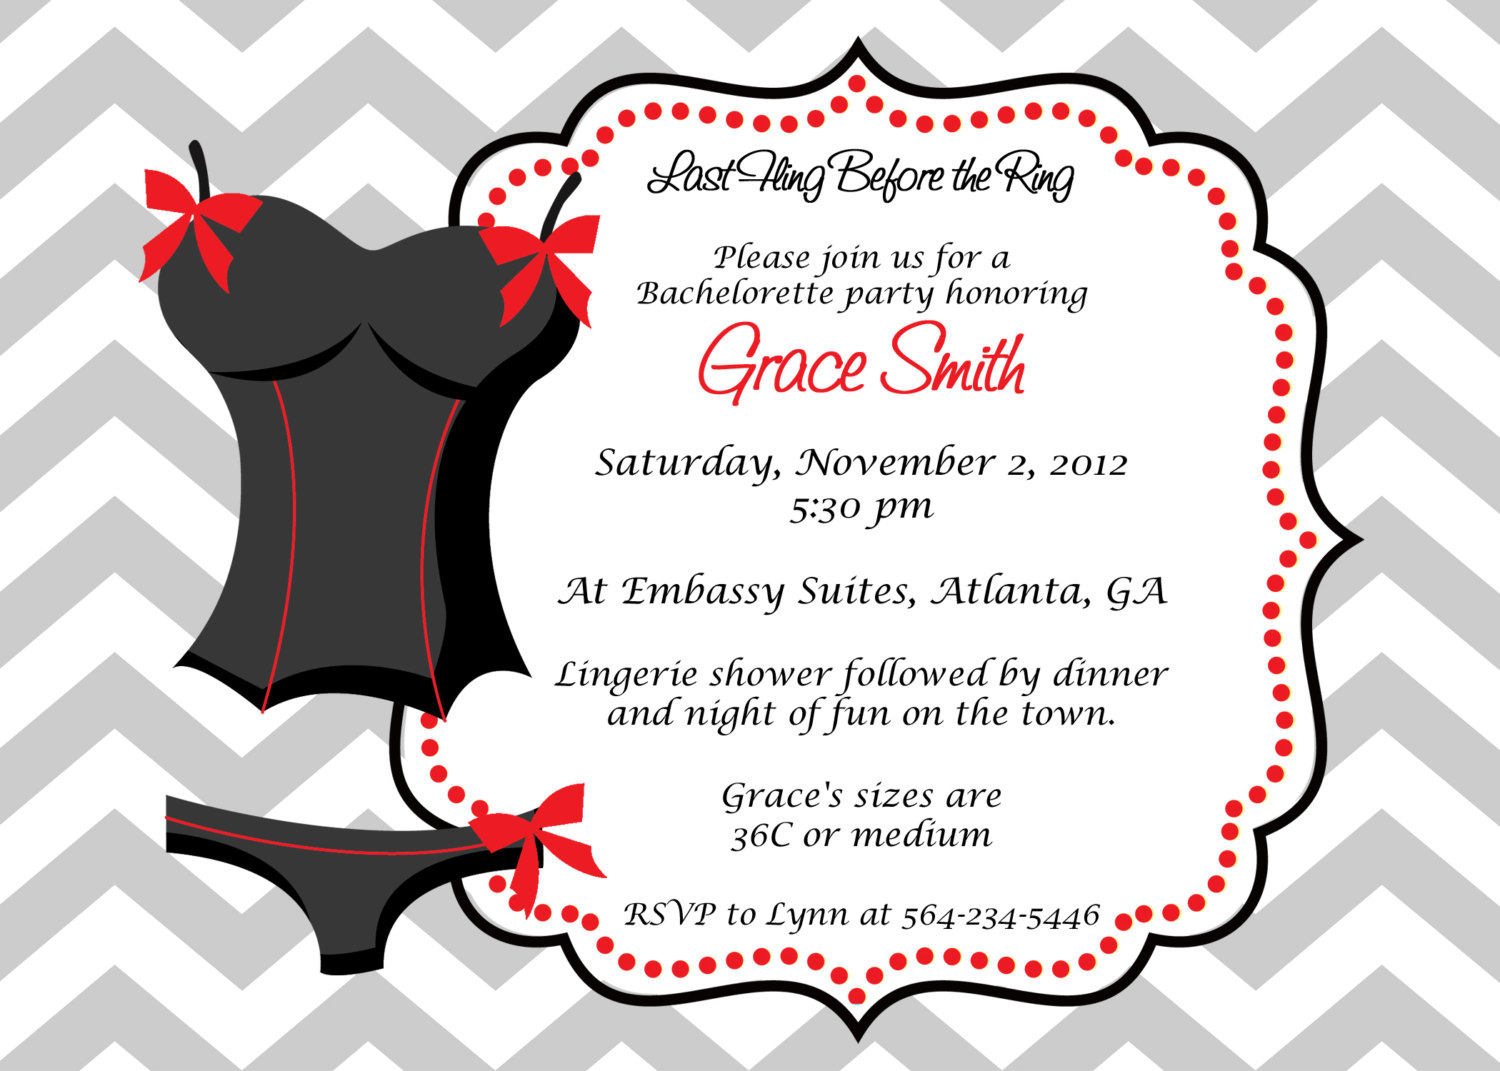 Bachelor Party Invitations gangcraftnet – Bachelor Party Email Invite